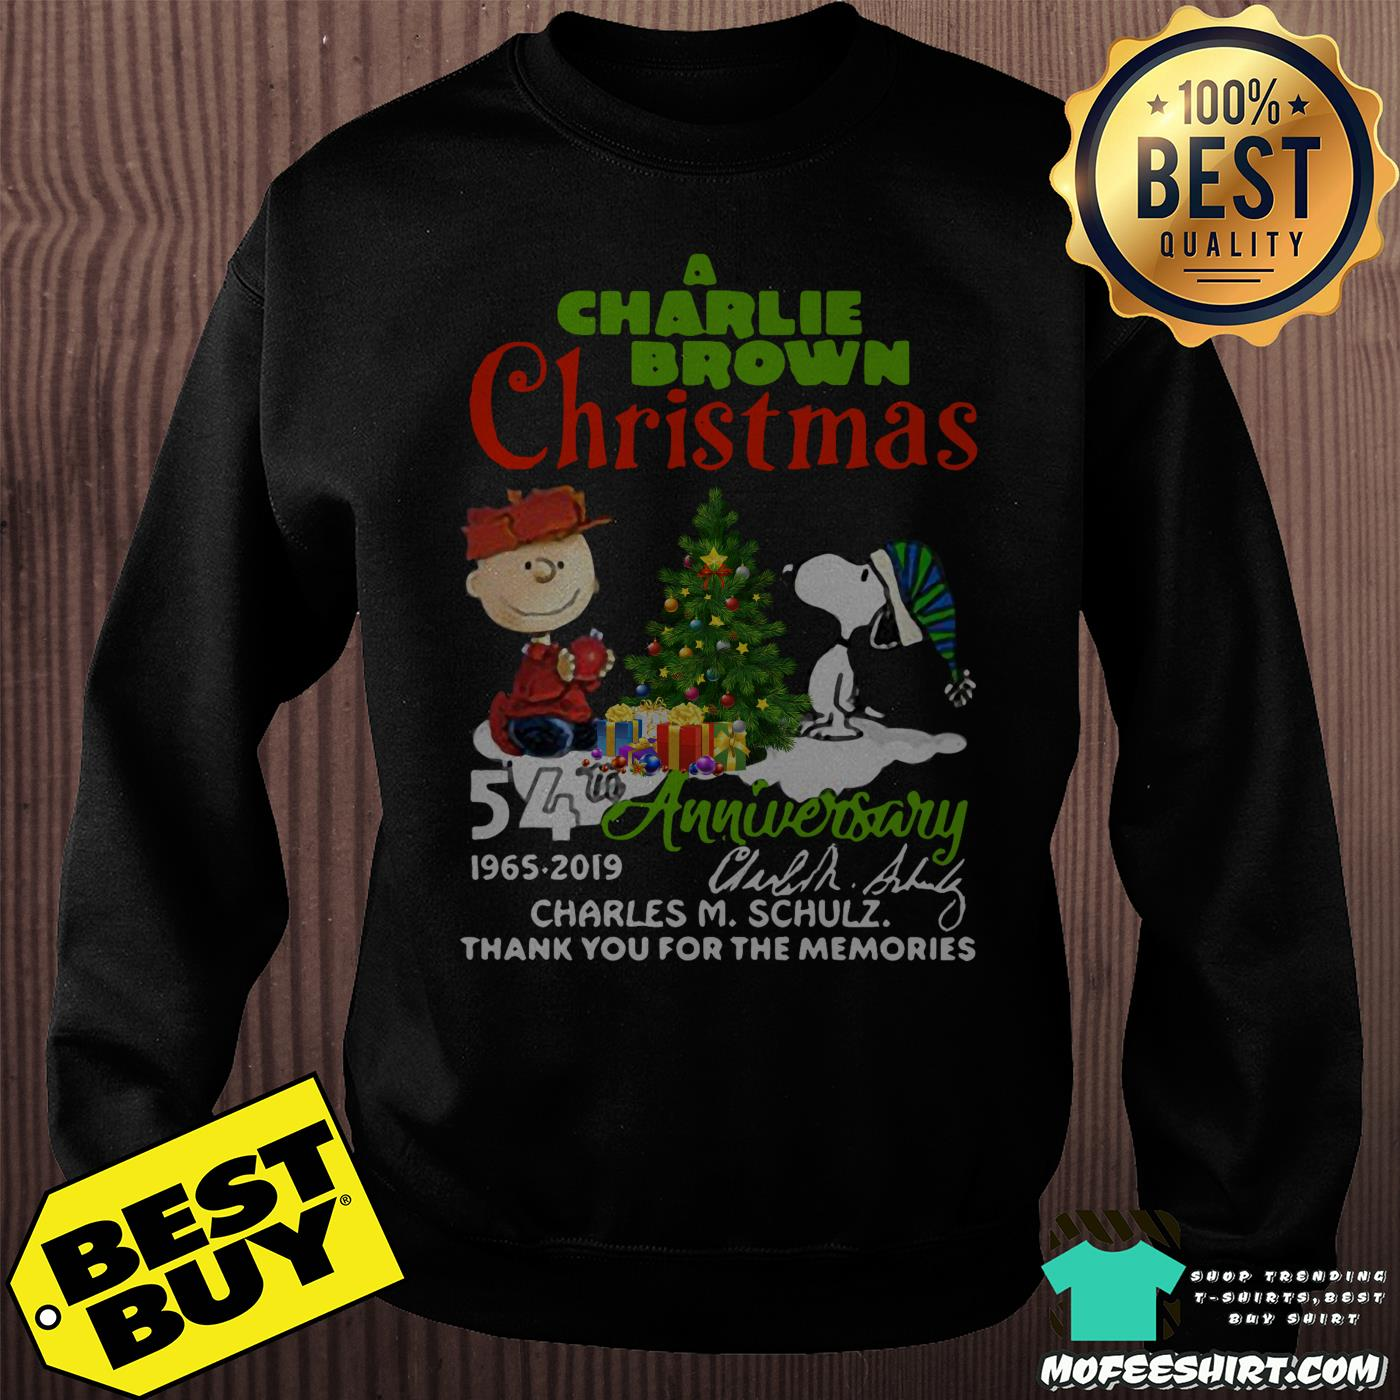 a charlie brown christmas 54th anniversary 1965 2019 signature sweatshirt - A Charlie Brown Christmas 54th Anniversary 1965-2019 Signature Shirt